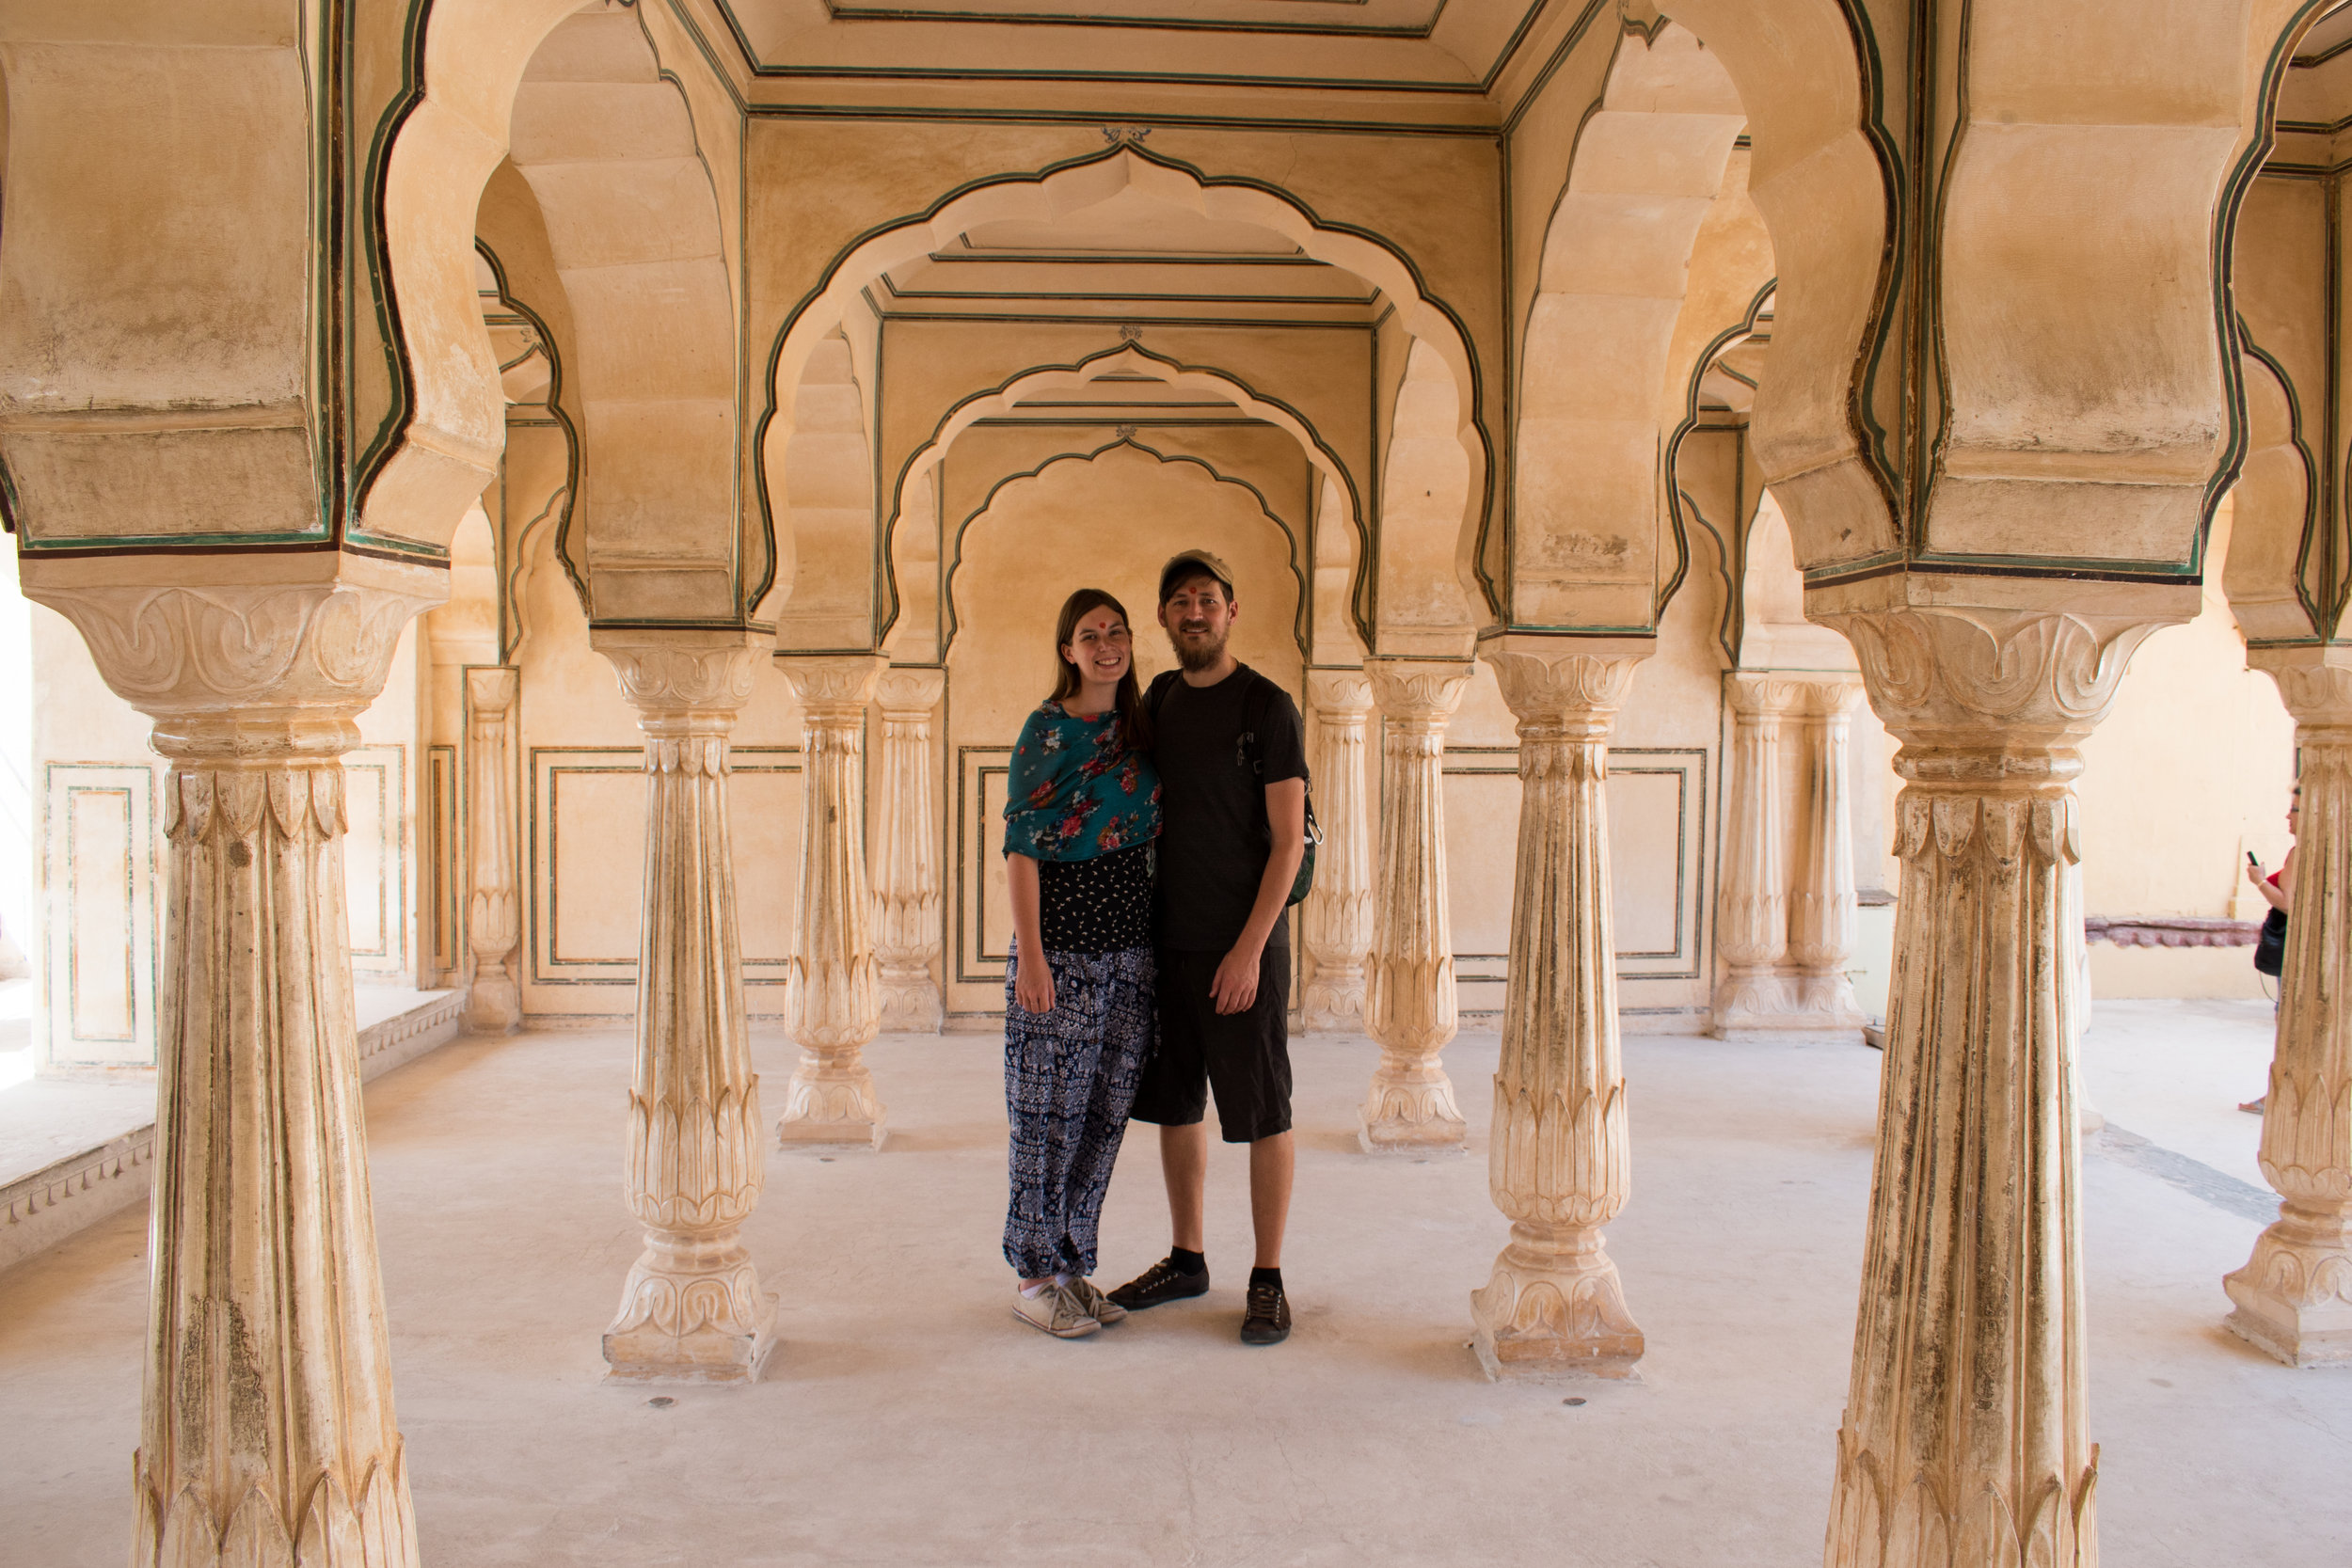 Craig and I at The Amber Fort in Jaipur, India